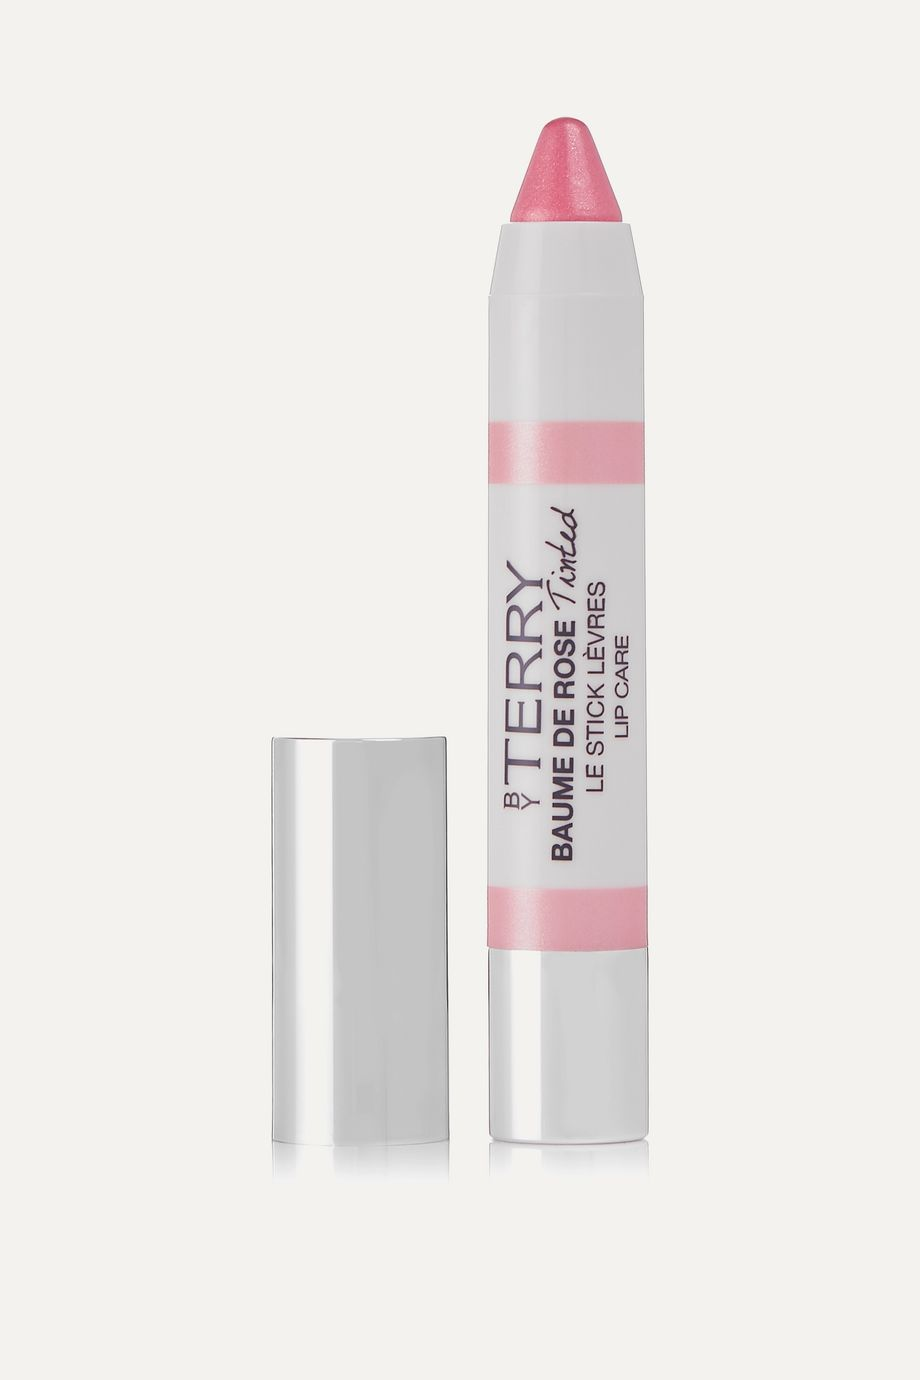 BY TERRY Baume de Rose Tinted Lip Care - Candy Rose No.01